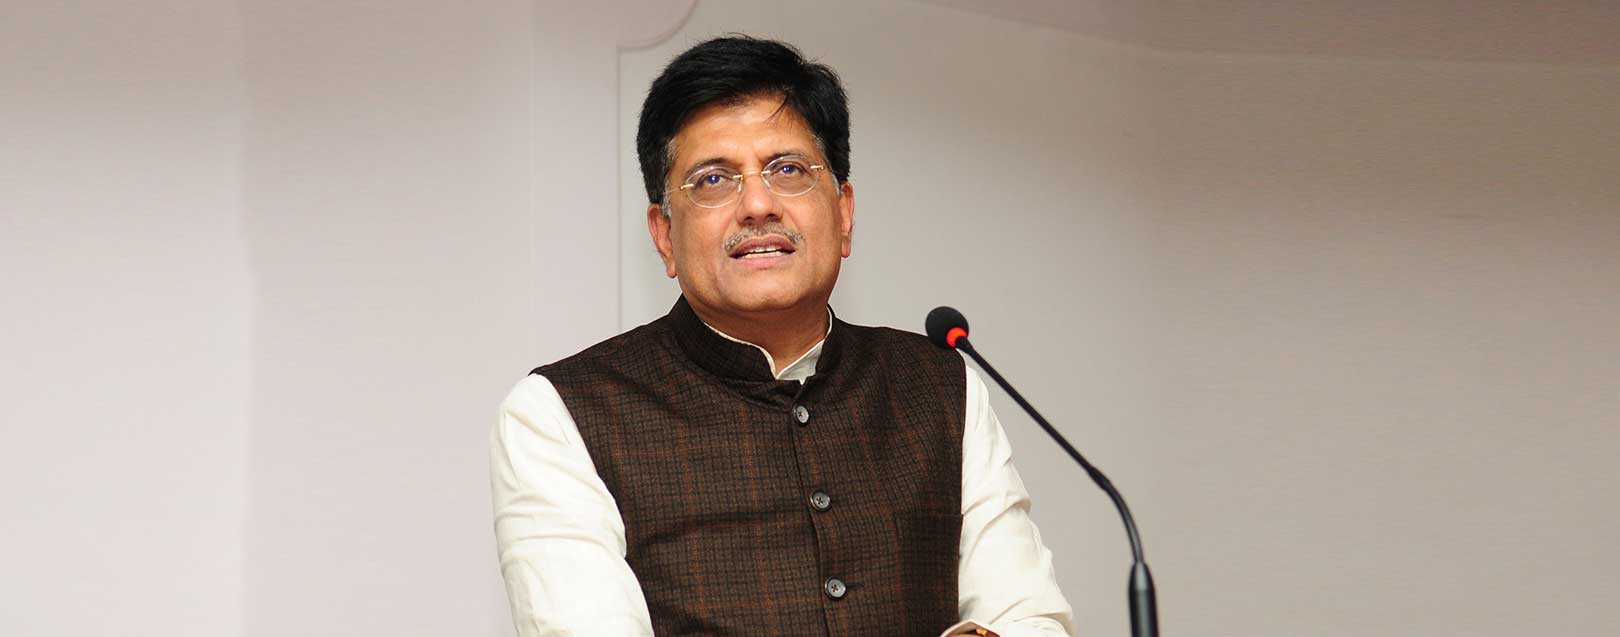 Govt working with banks to ramp up PoS machines: Goyal